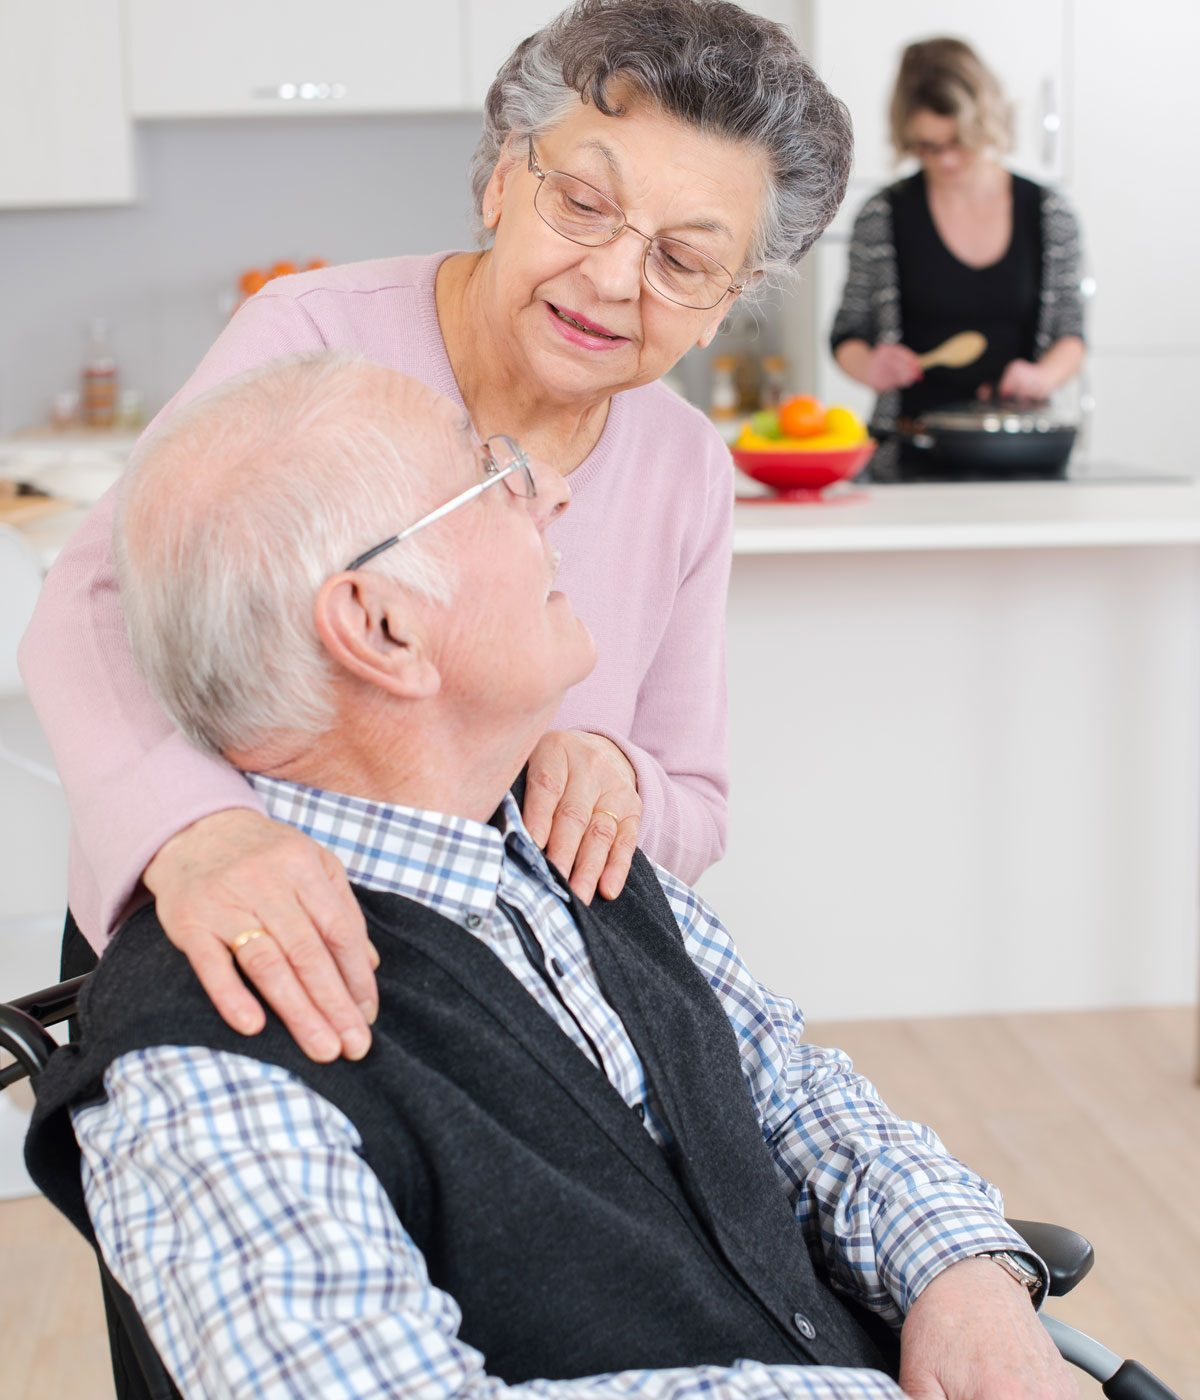 Two elderly people looking at each other